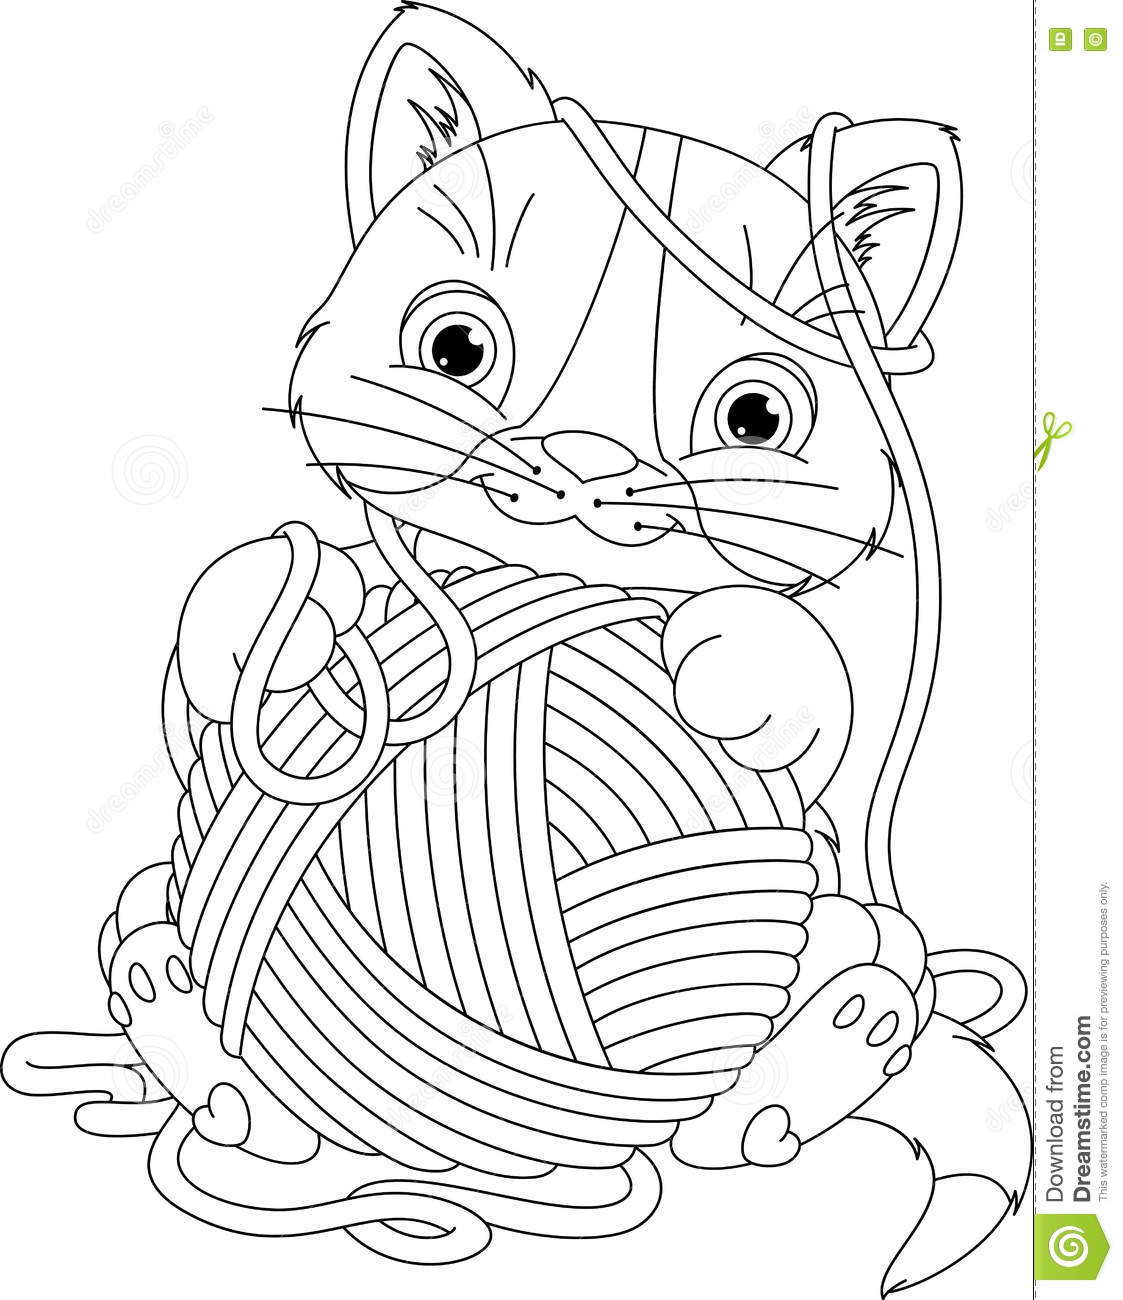 Kirbys Epic Yarn Coloring Pages